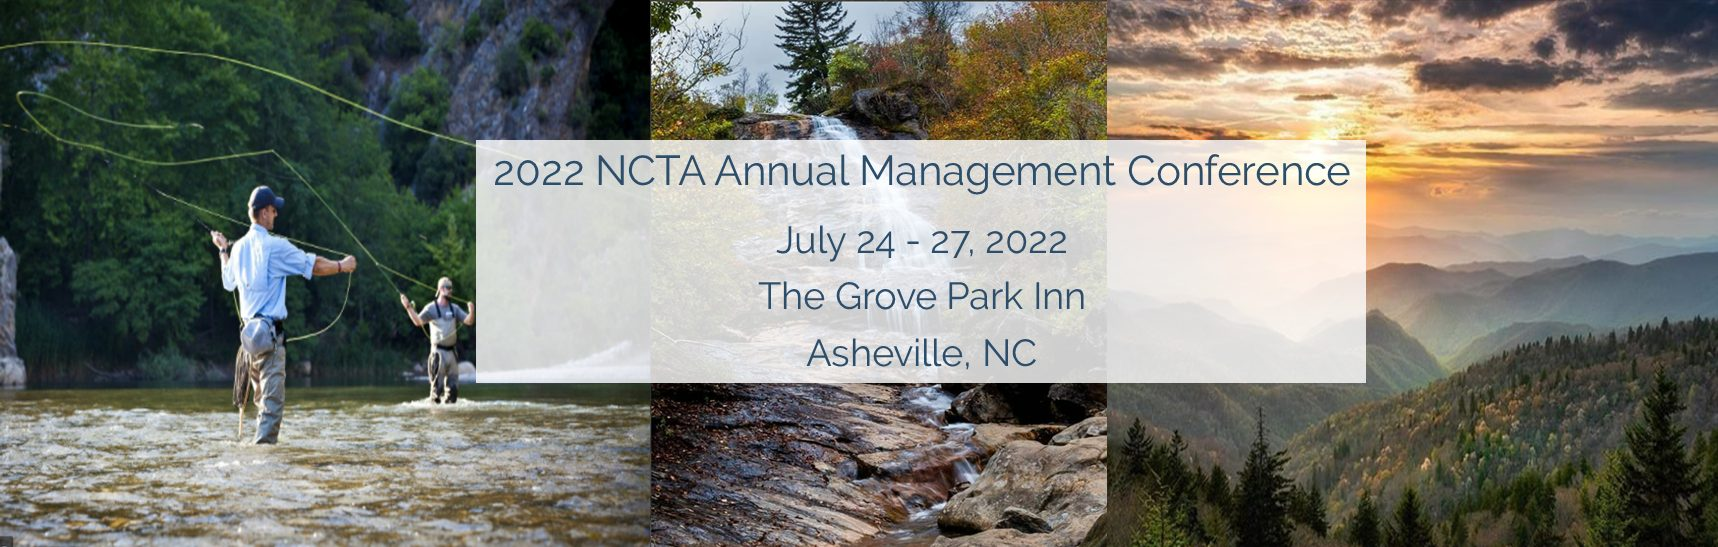 Annual Management Conference Banner revised 9-1-21